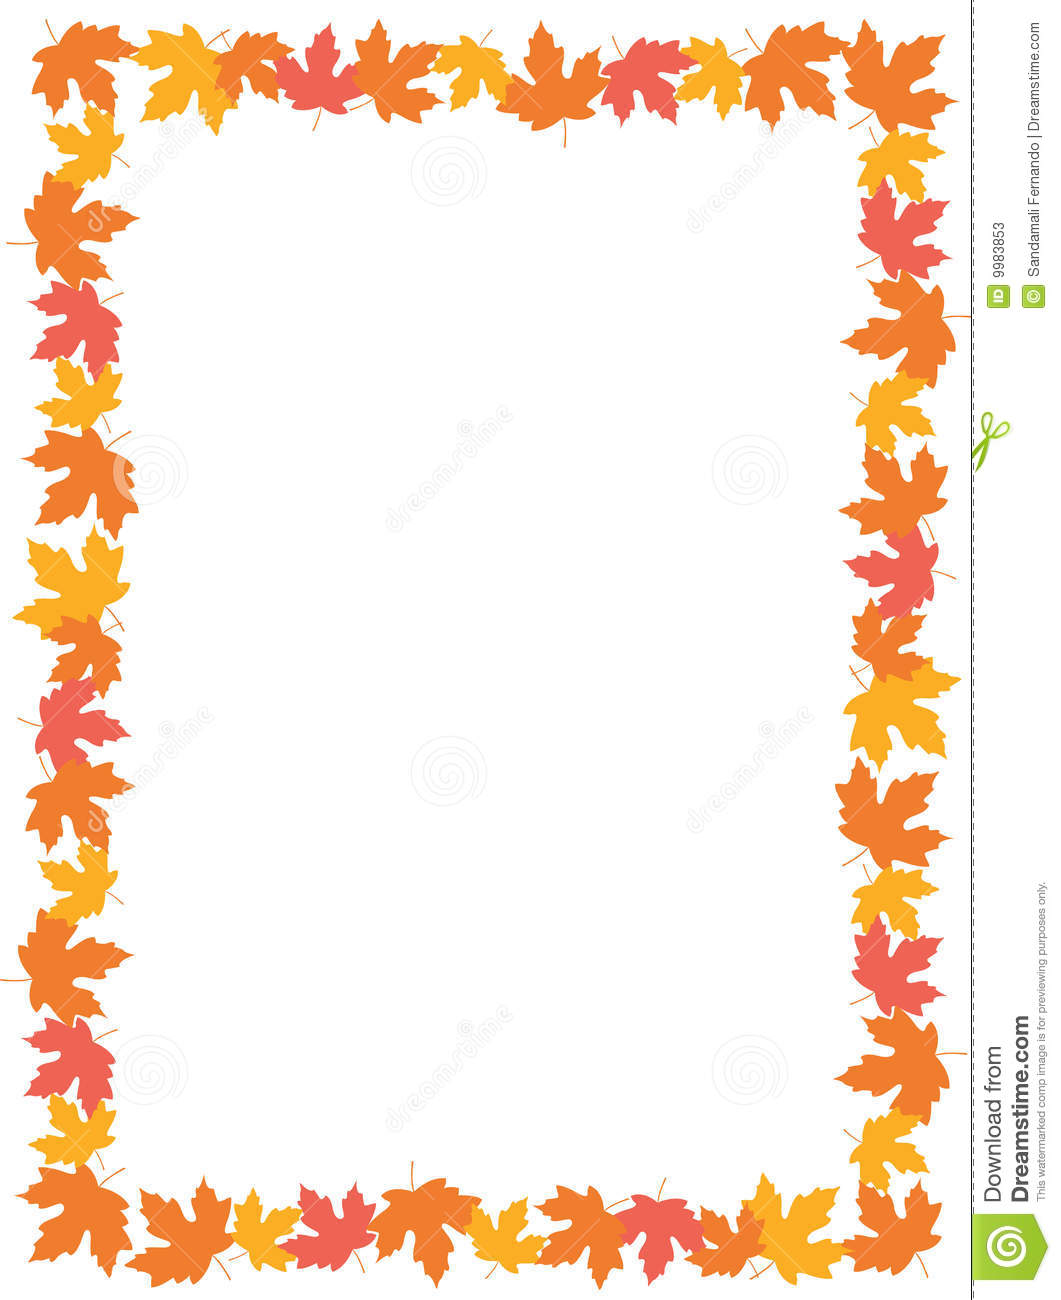 Colorful autumn leaves maple leaves falling background border